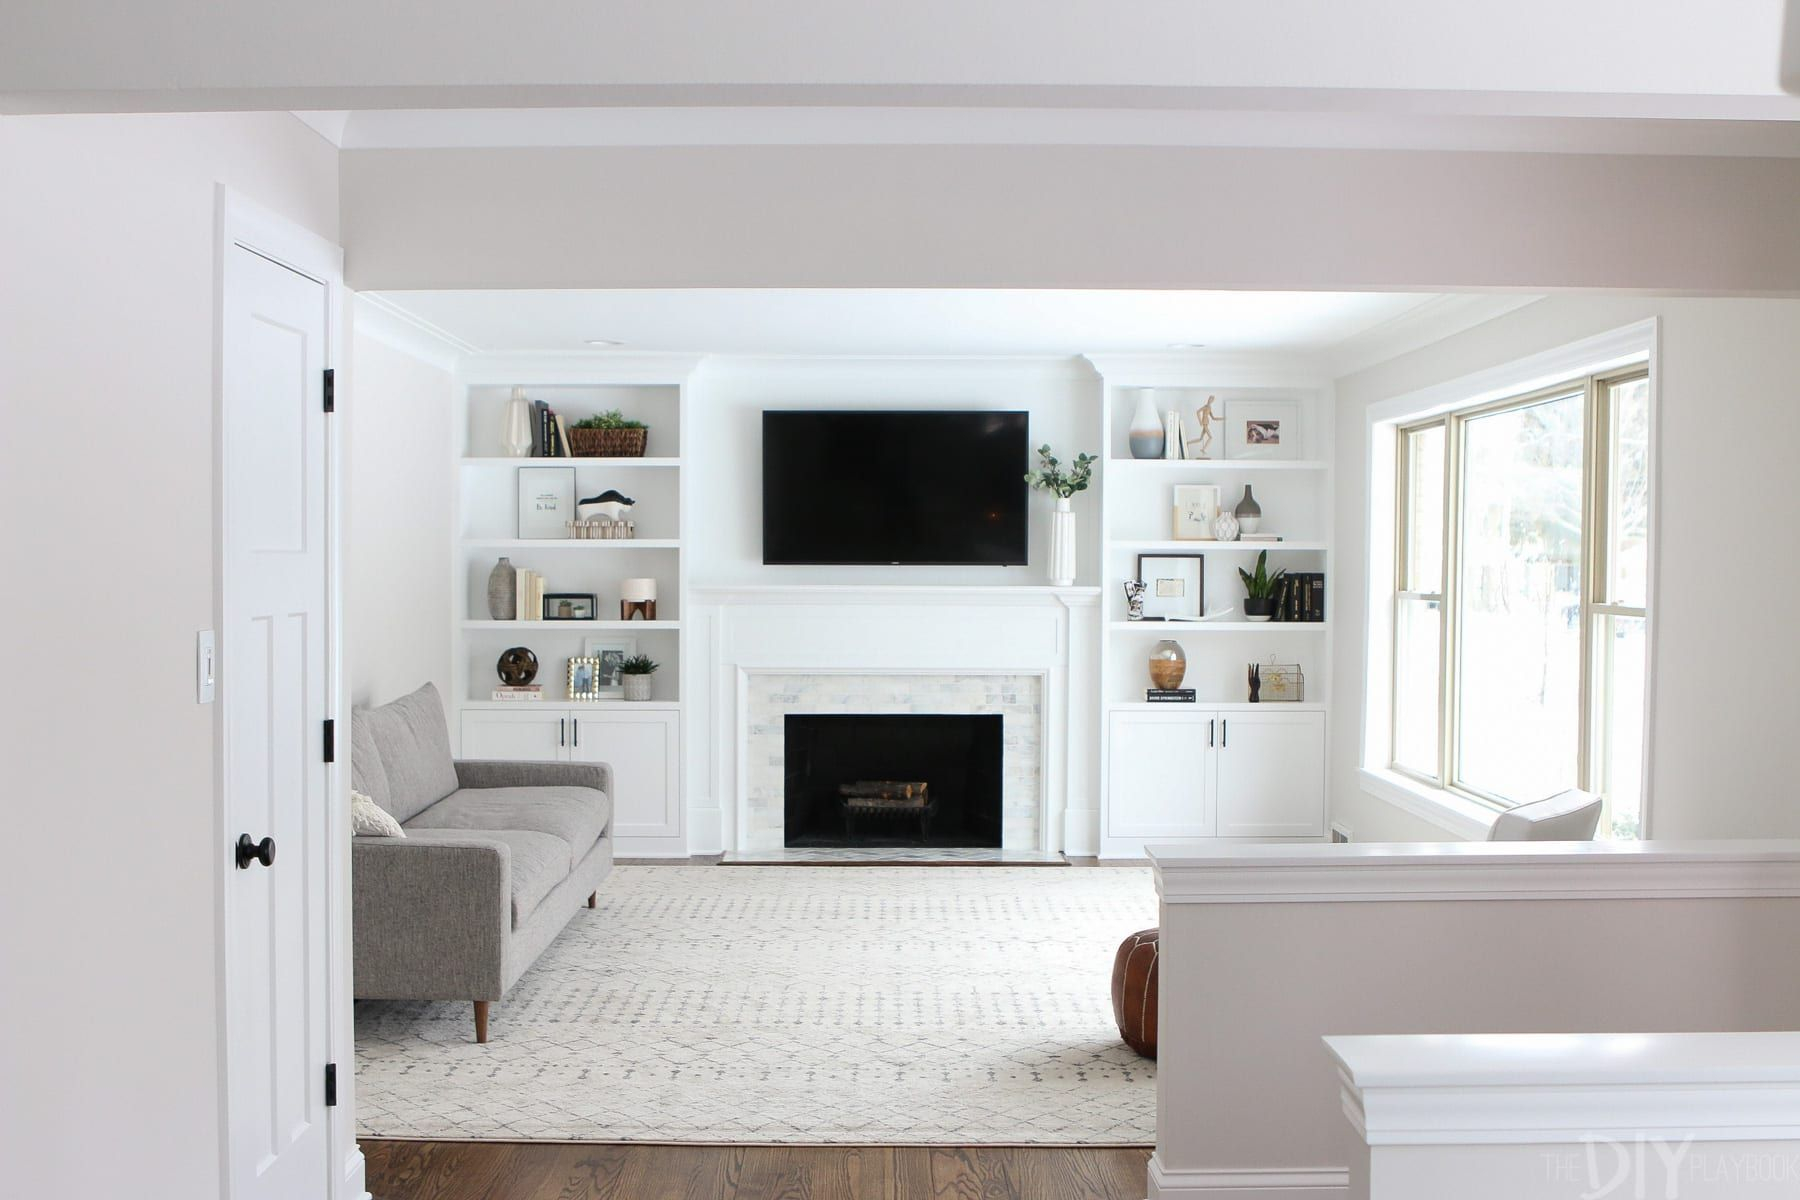 White Built Ins Around The Fireplace Before And After throughout measurements 1800 X 1200